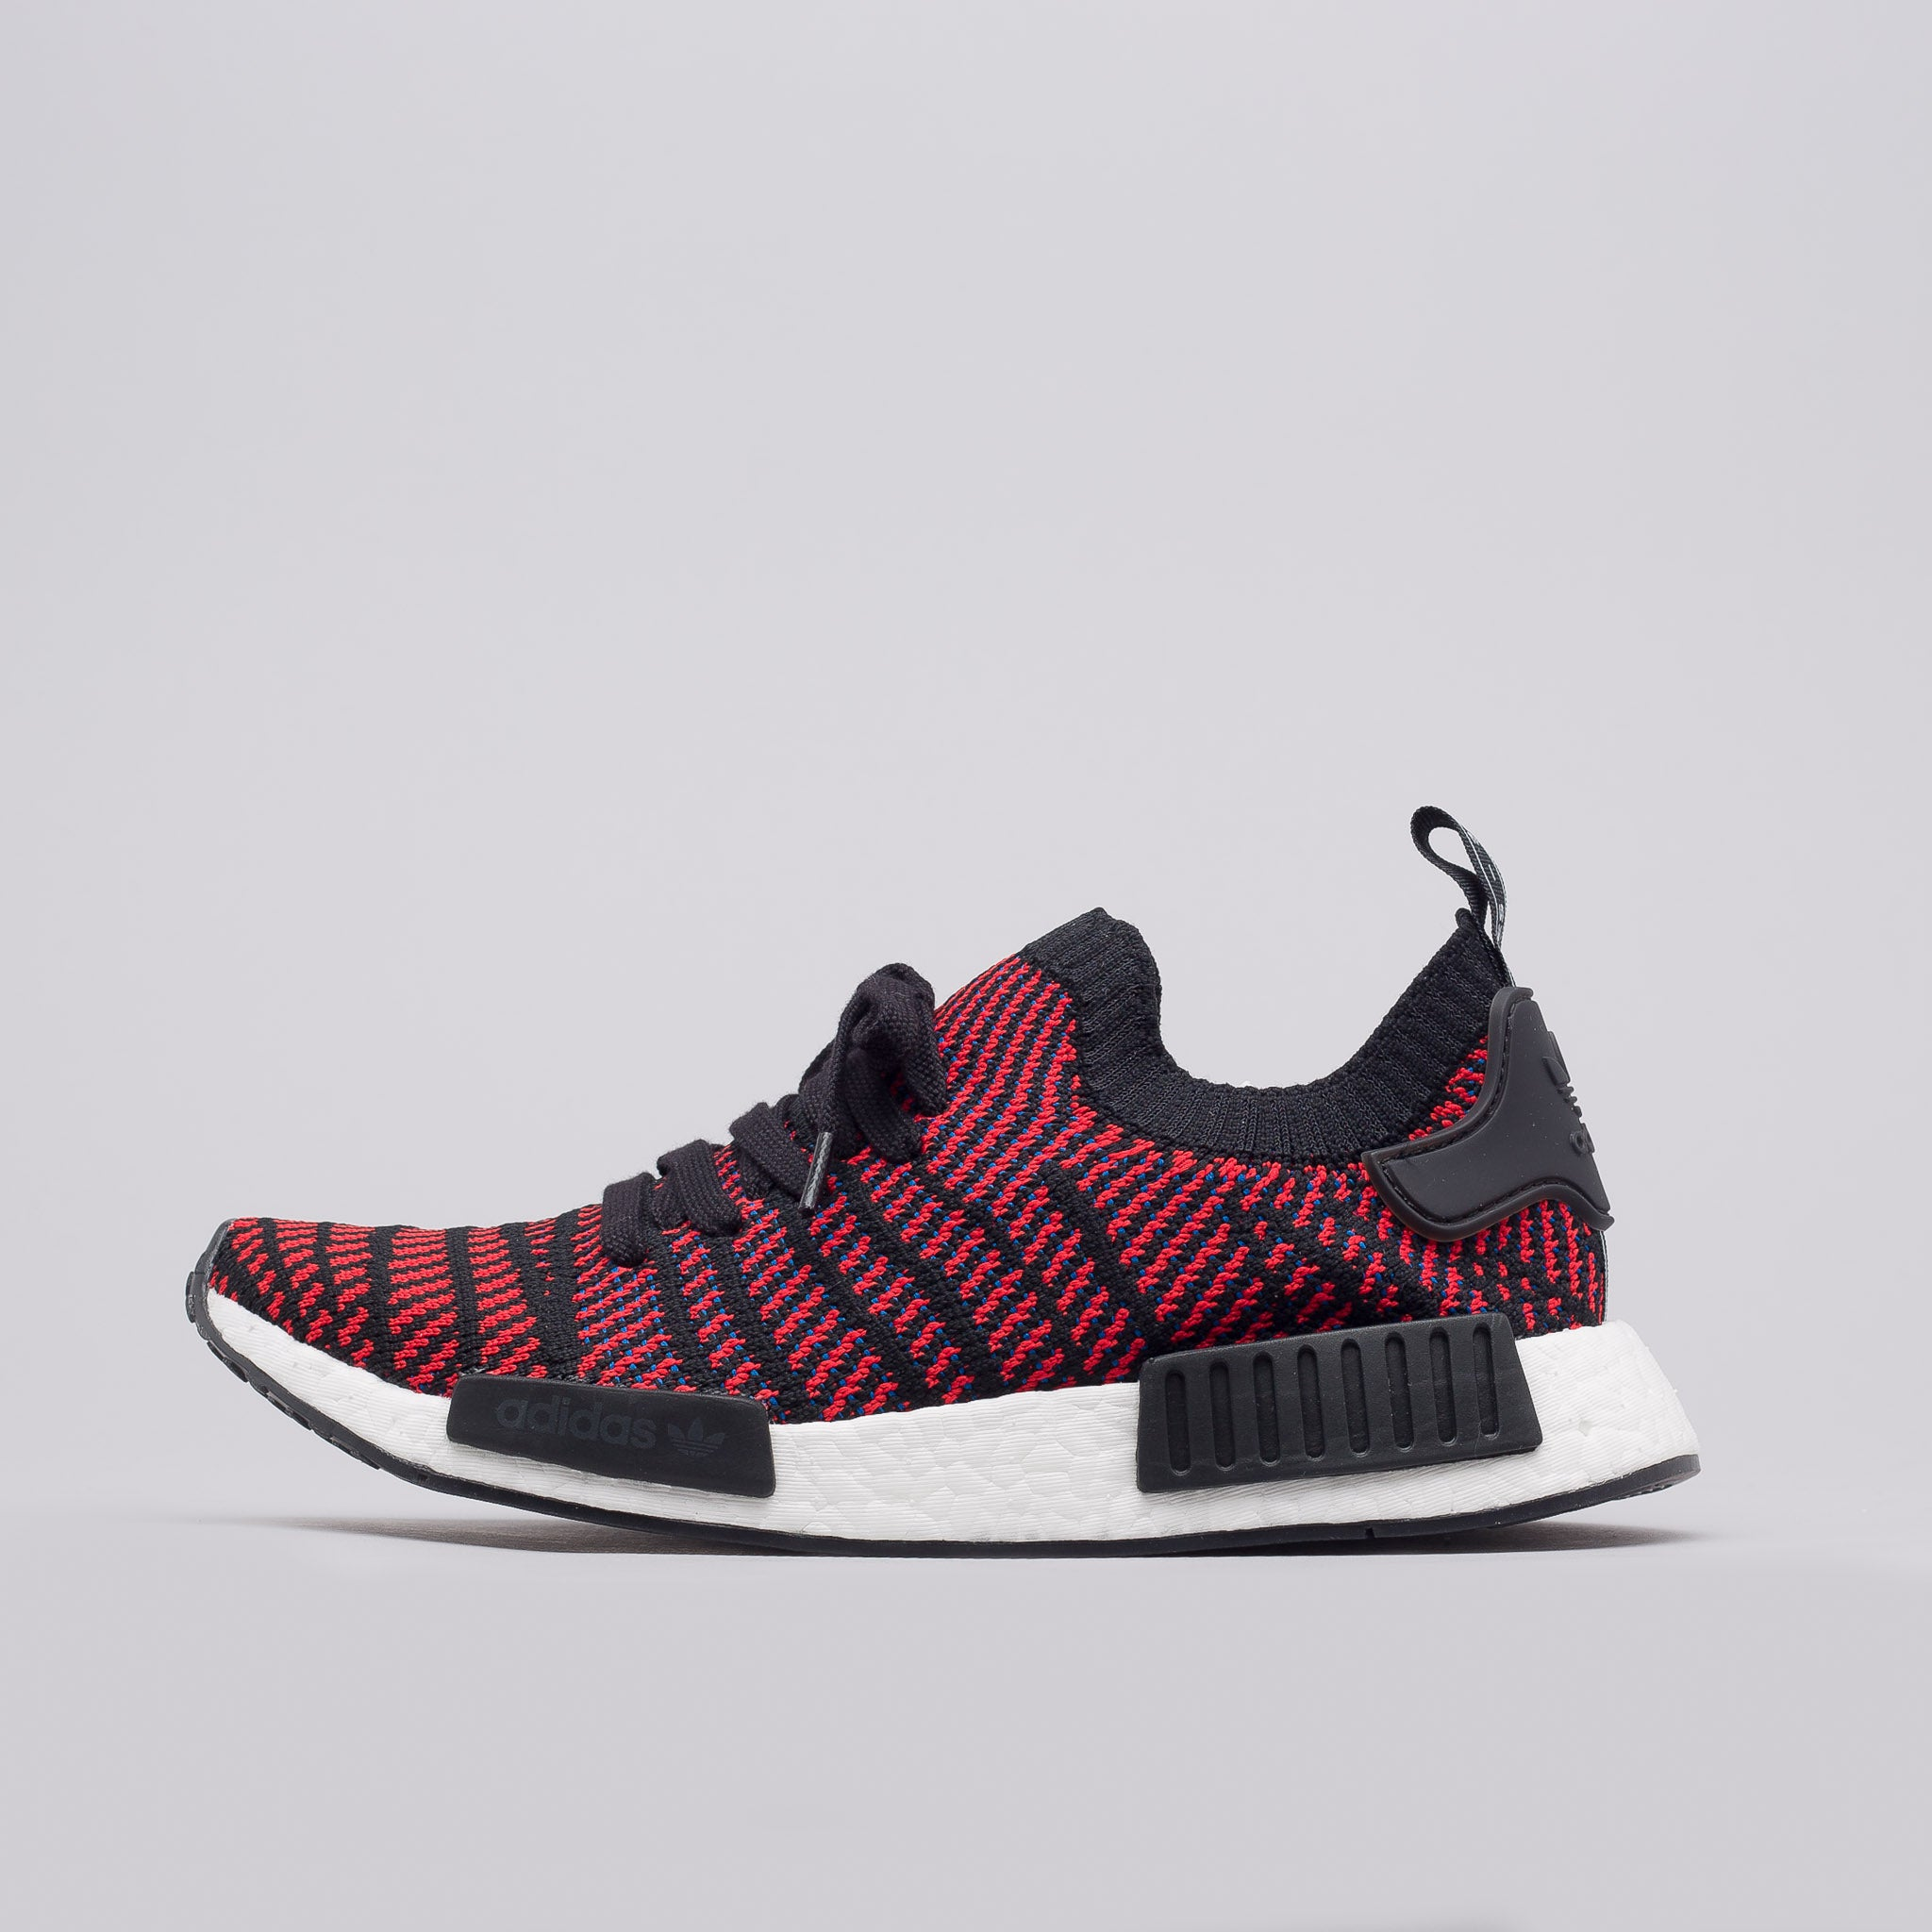 adidas NMD R1 Runner Vapor Pink Light Onix Grey Offspring By3059